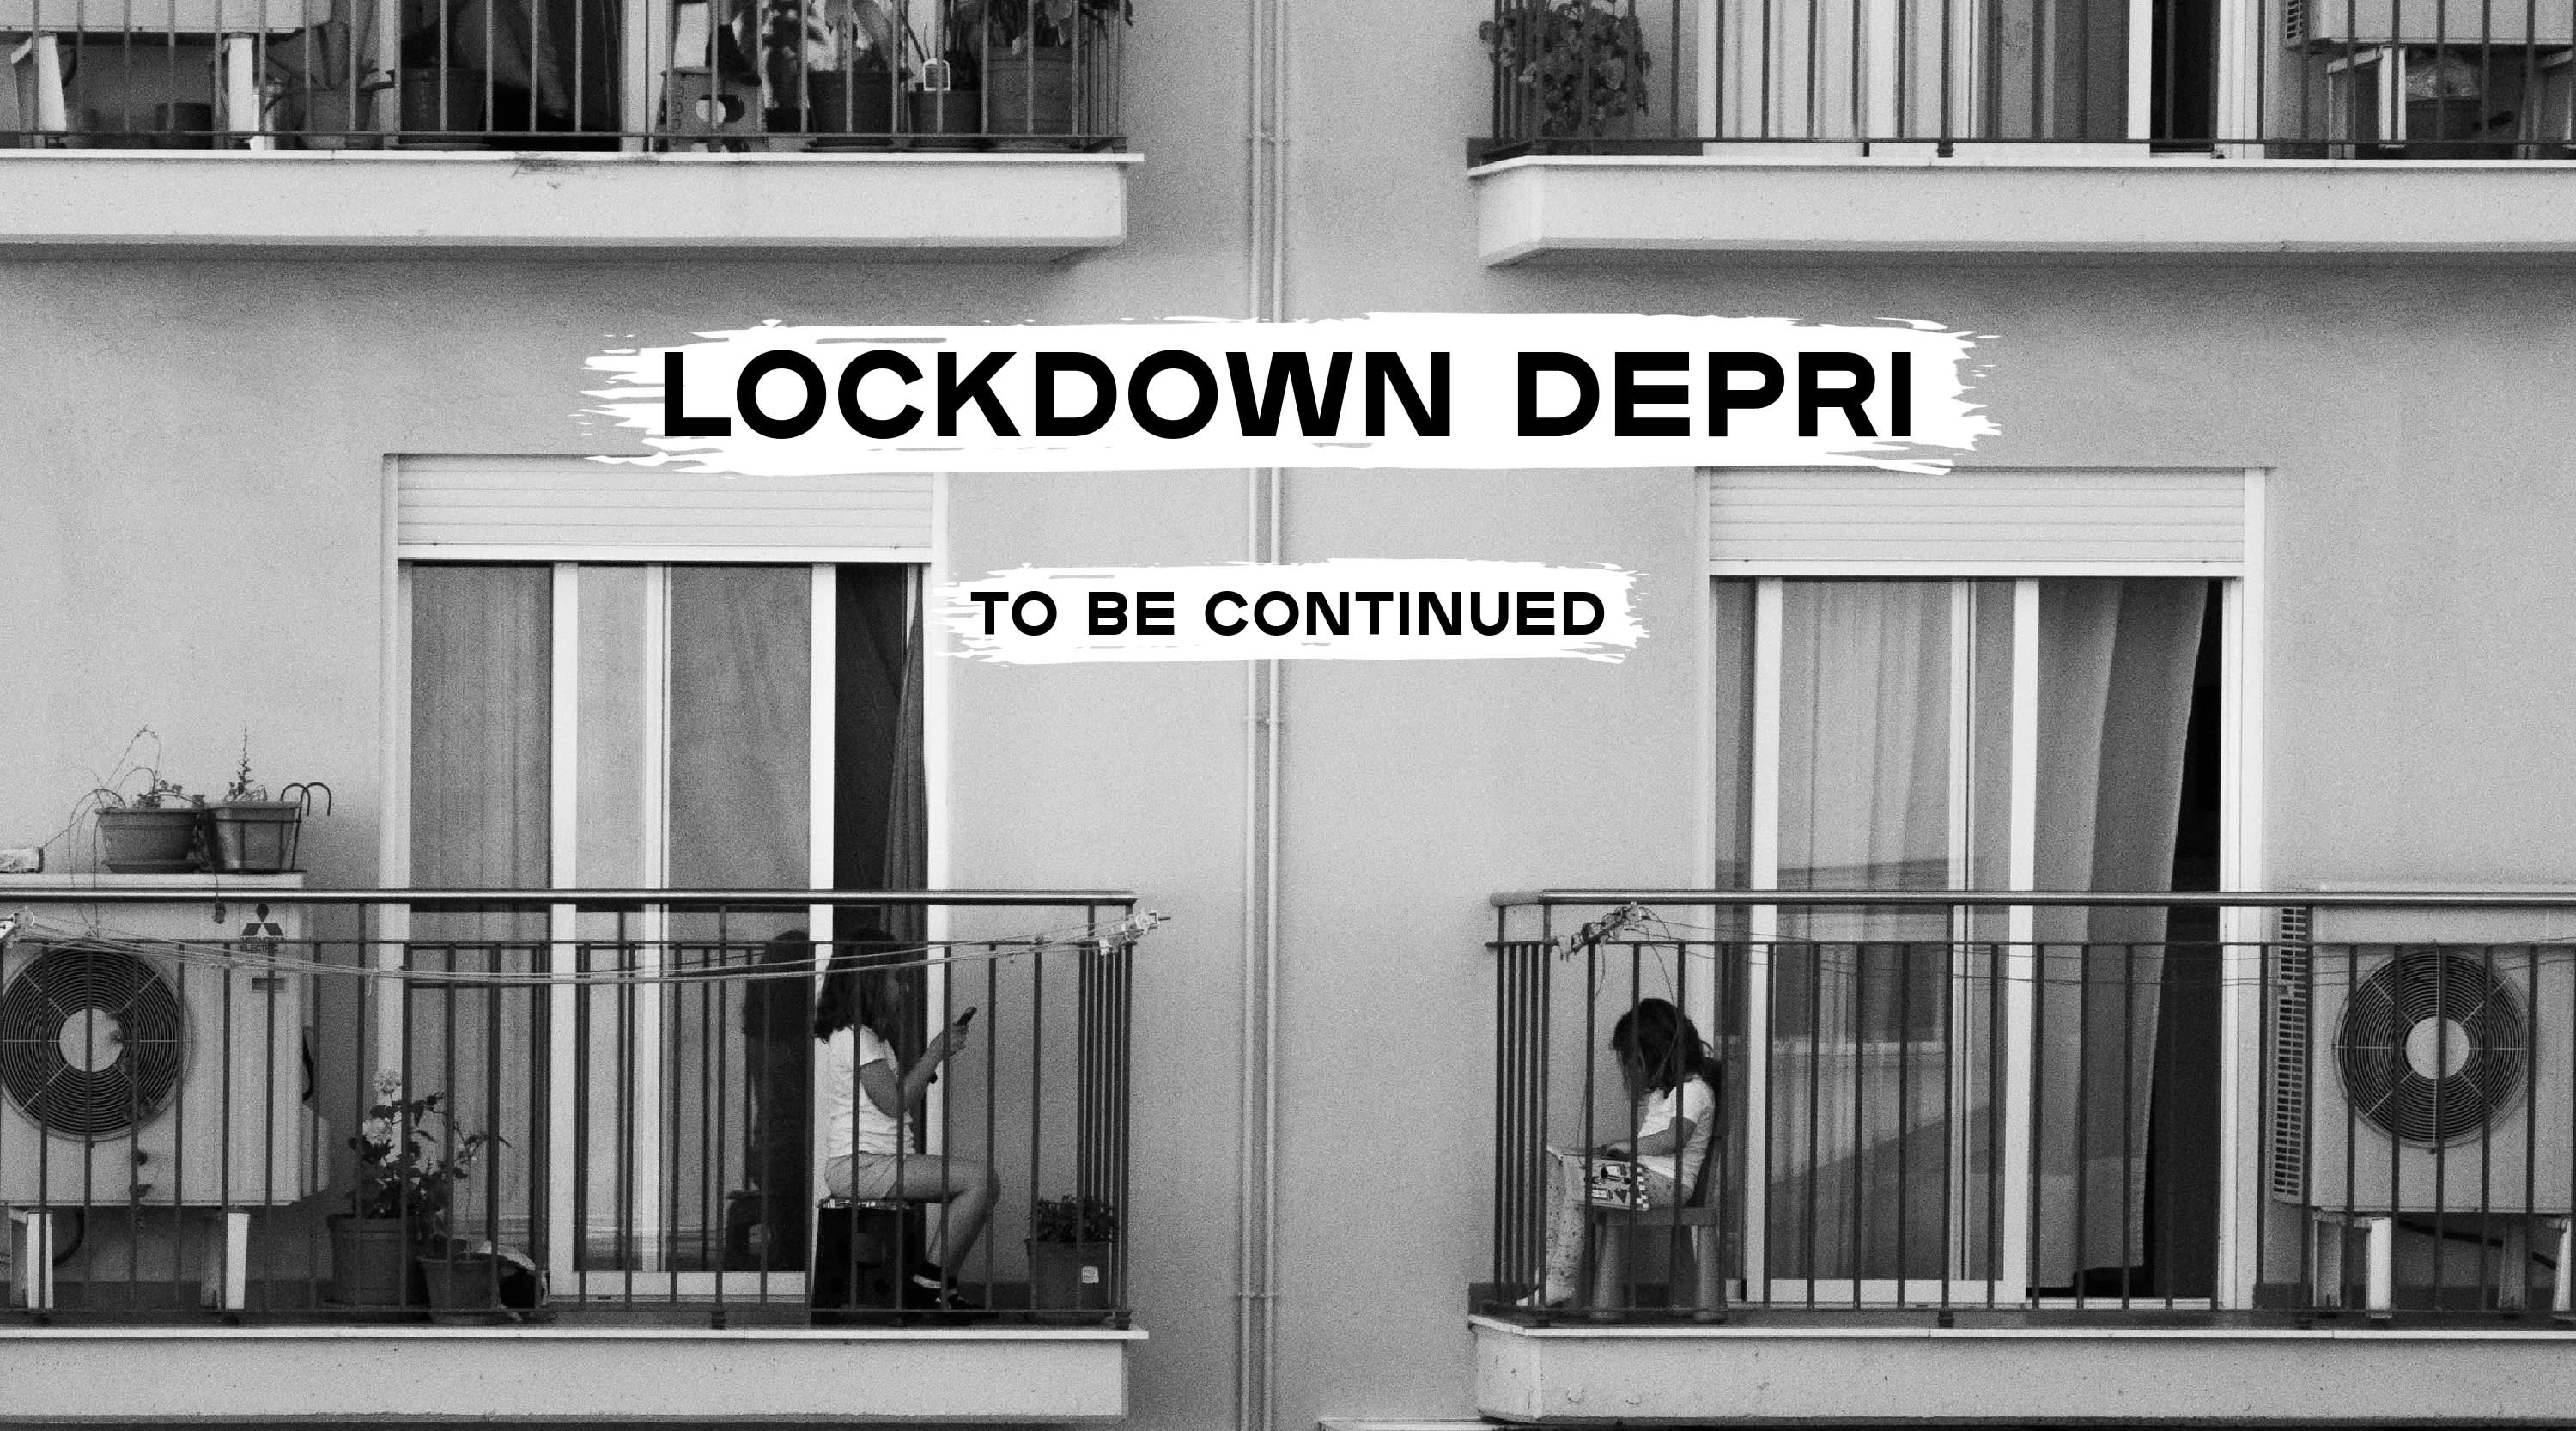 Lockdown Depri - To be continued...